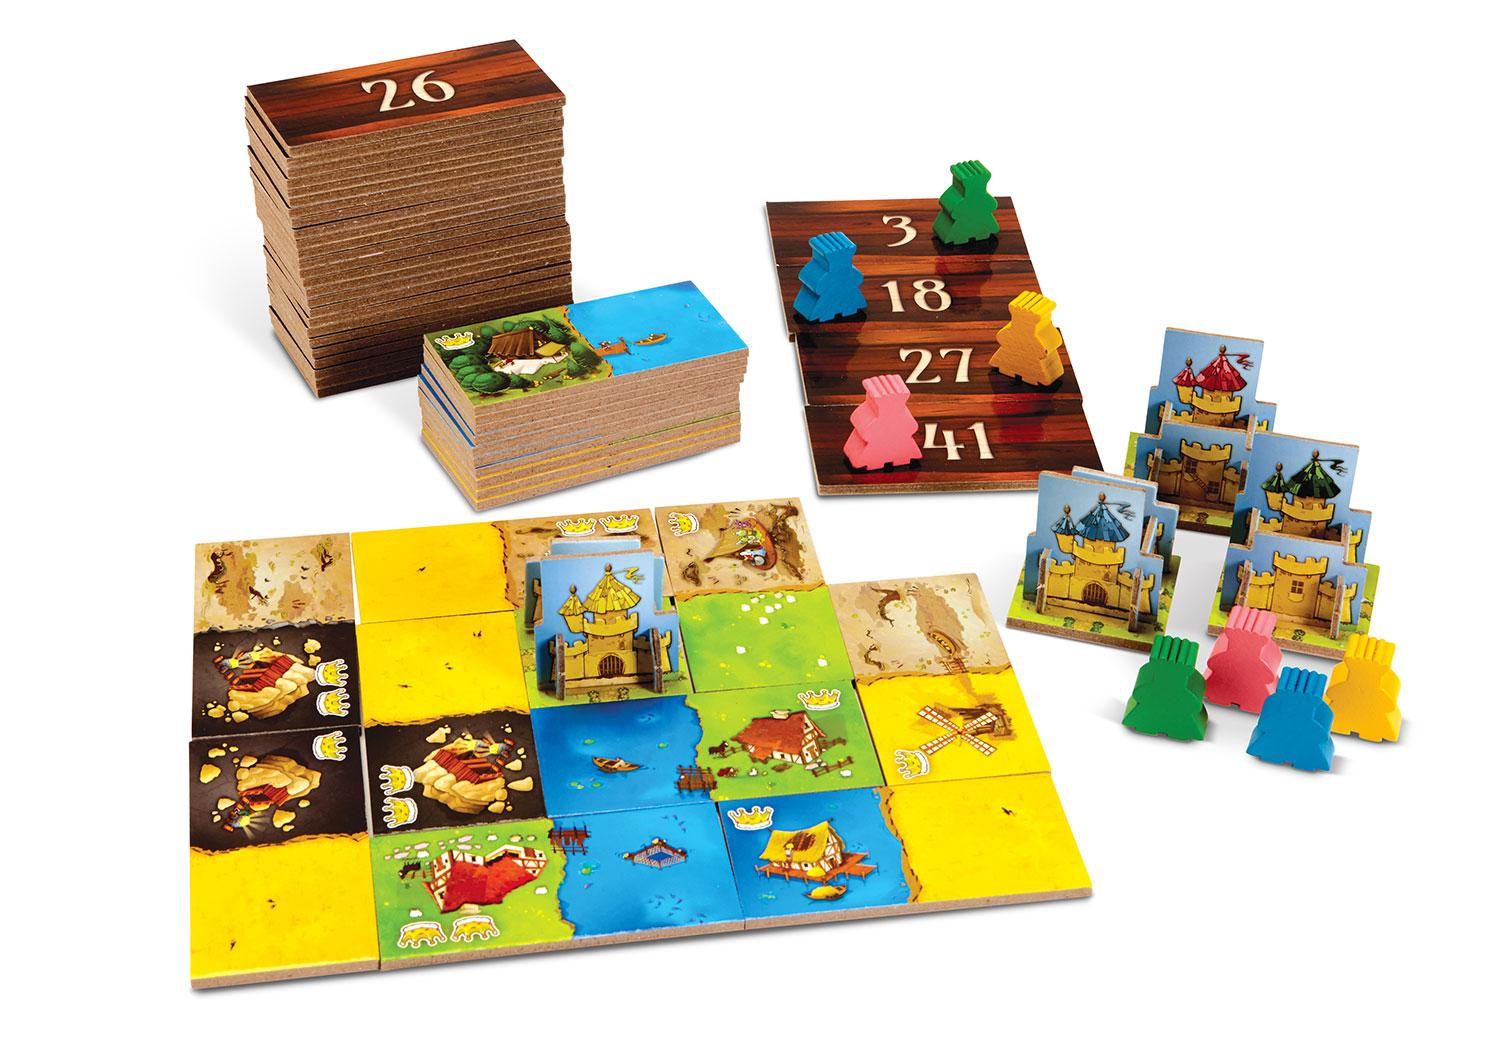 Kingdomino game open